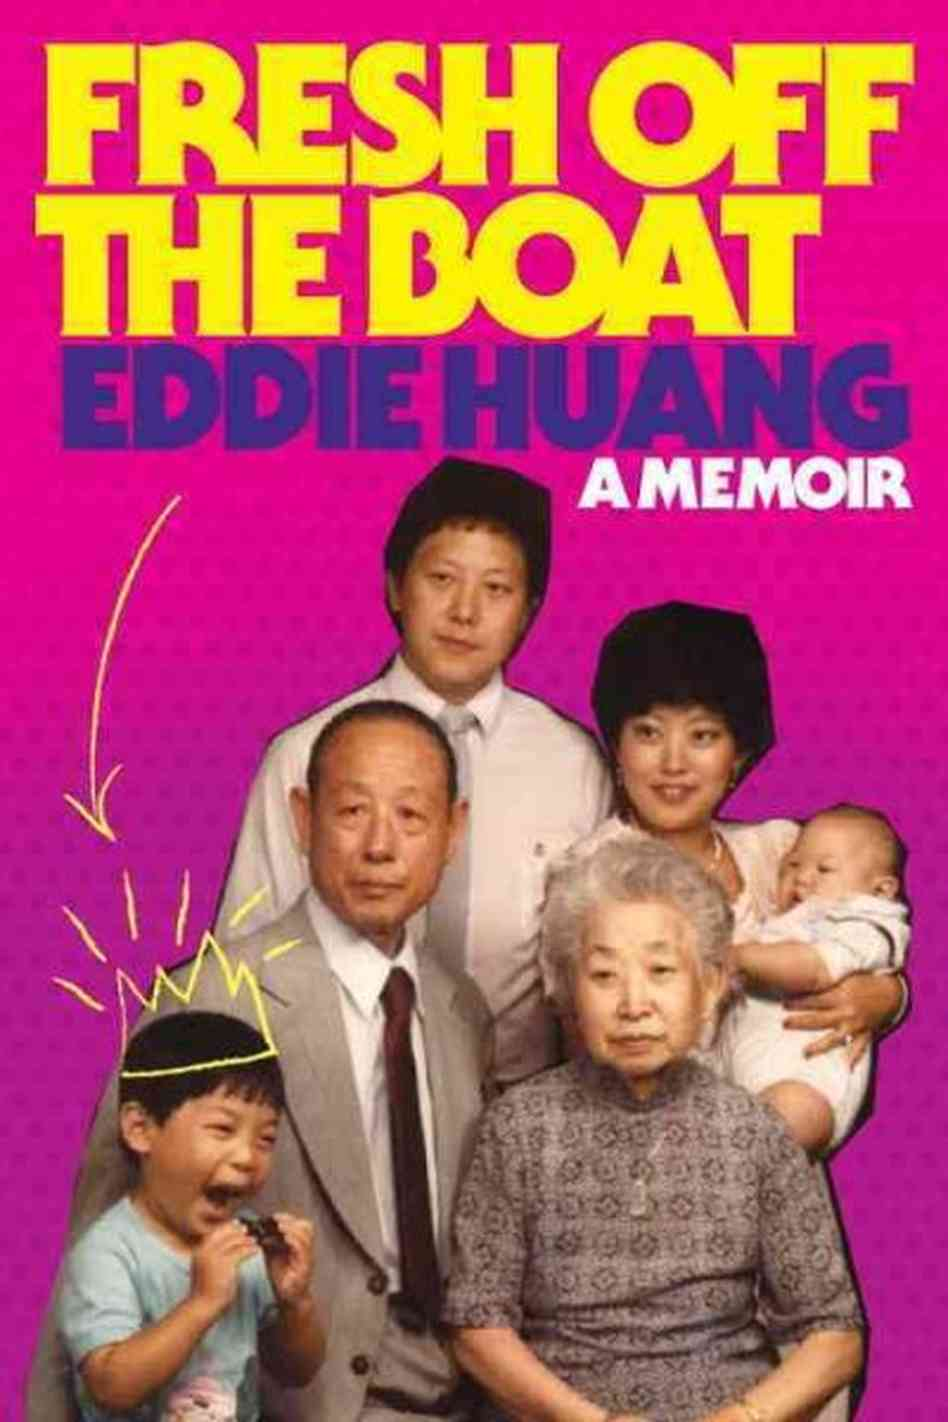 Fresh Off the Boat: A Memoir by Eddie Huang  Amazon  |  Goodreads